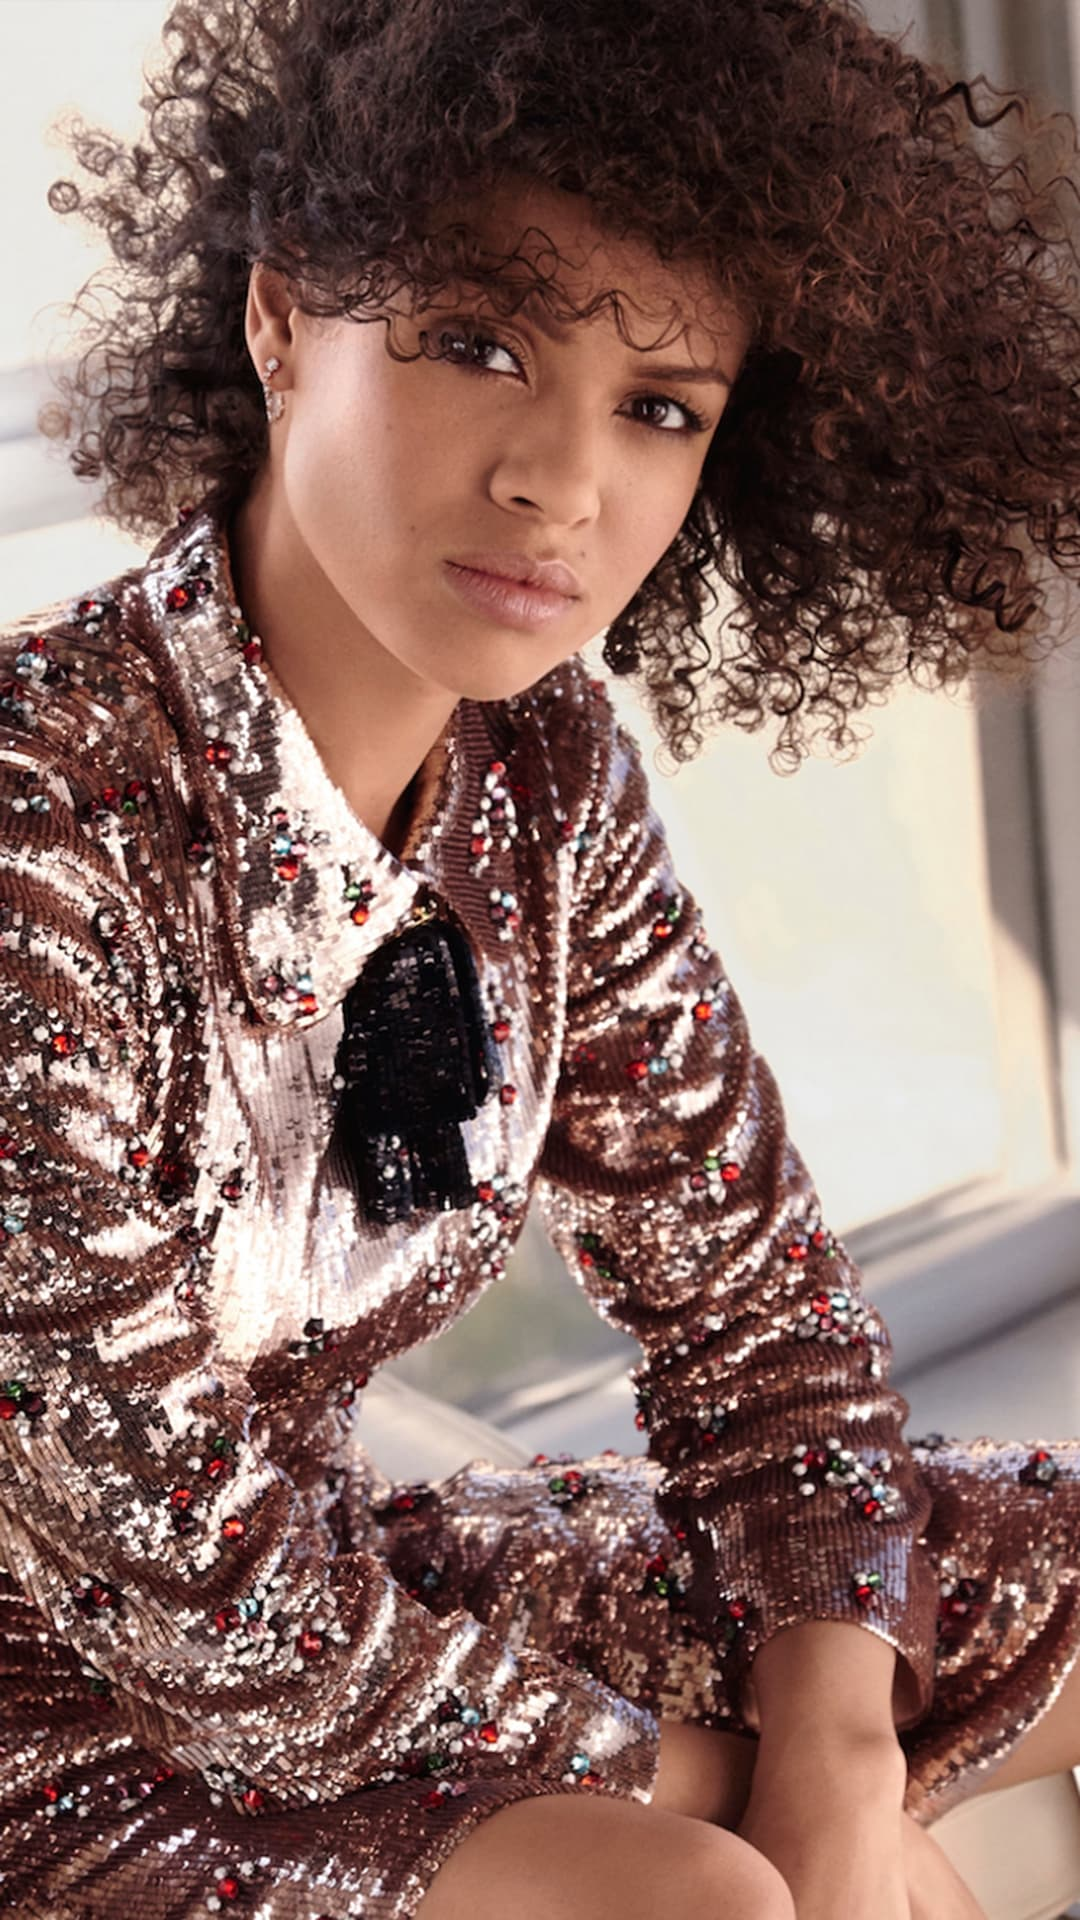 Gugu Mbatha Raw Wallpapers High Quality Resolution Download